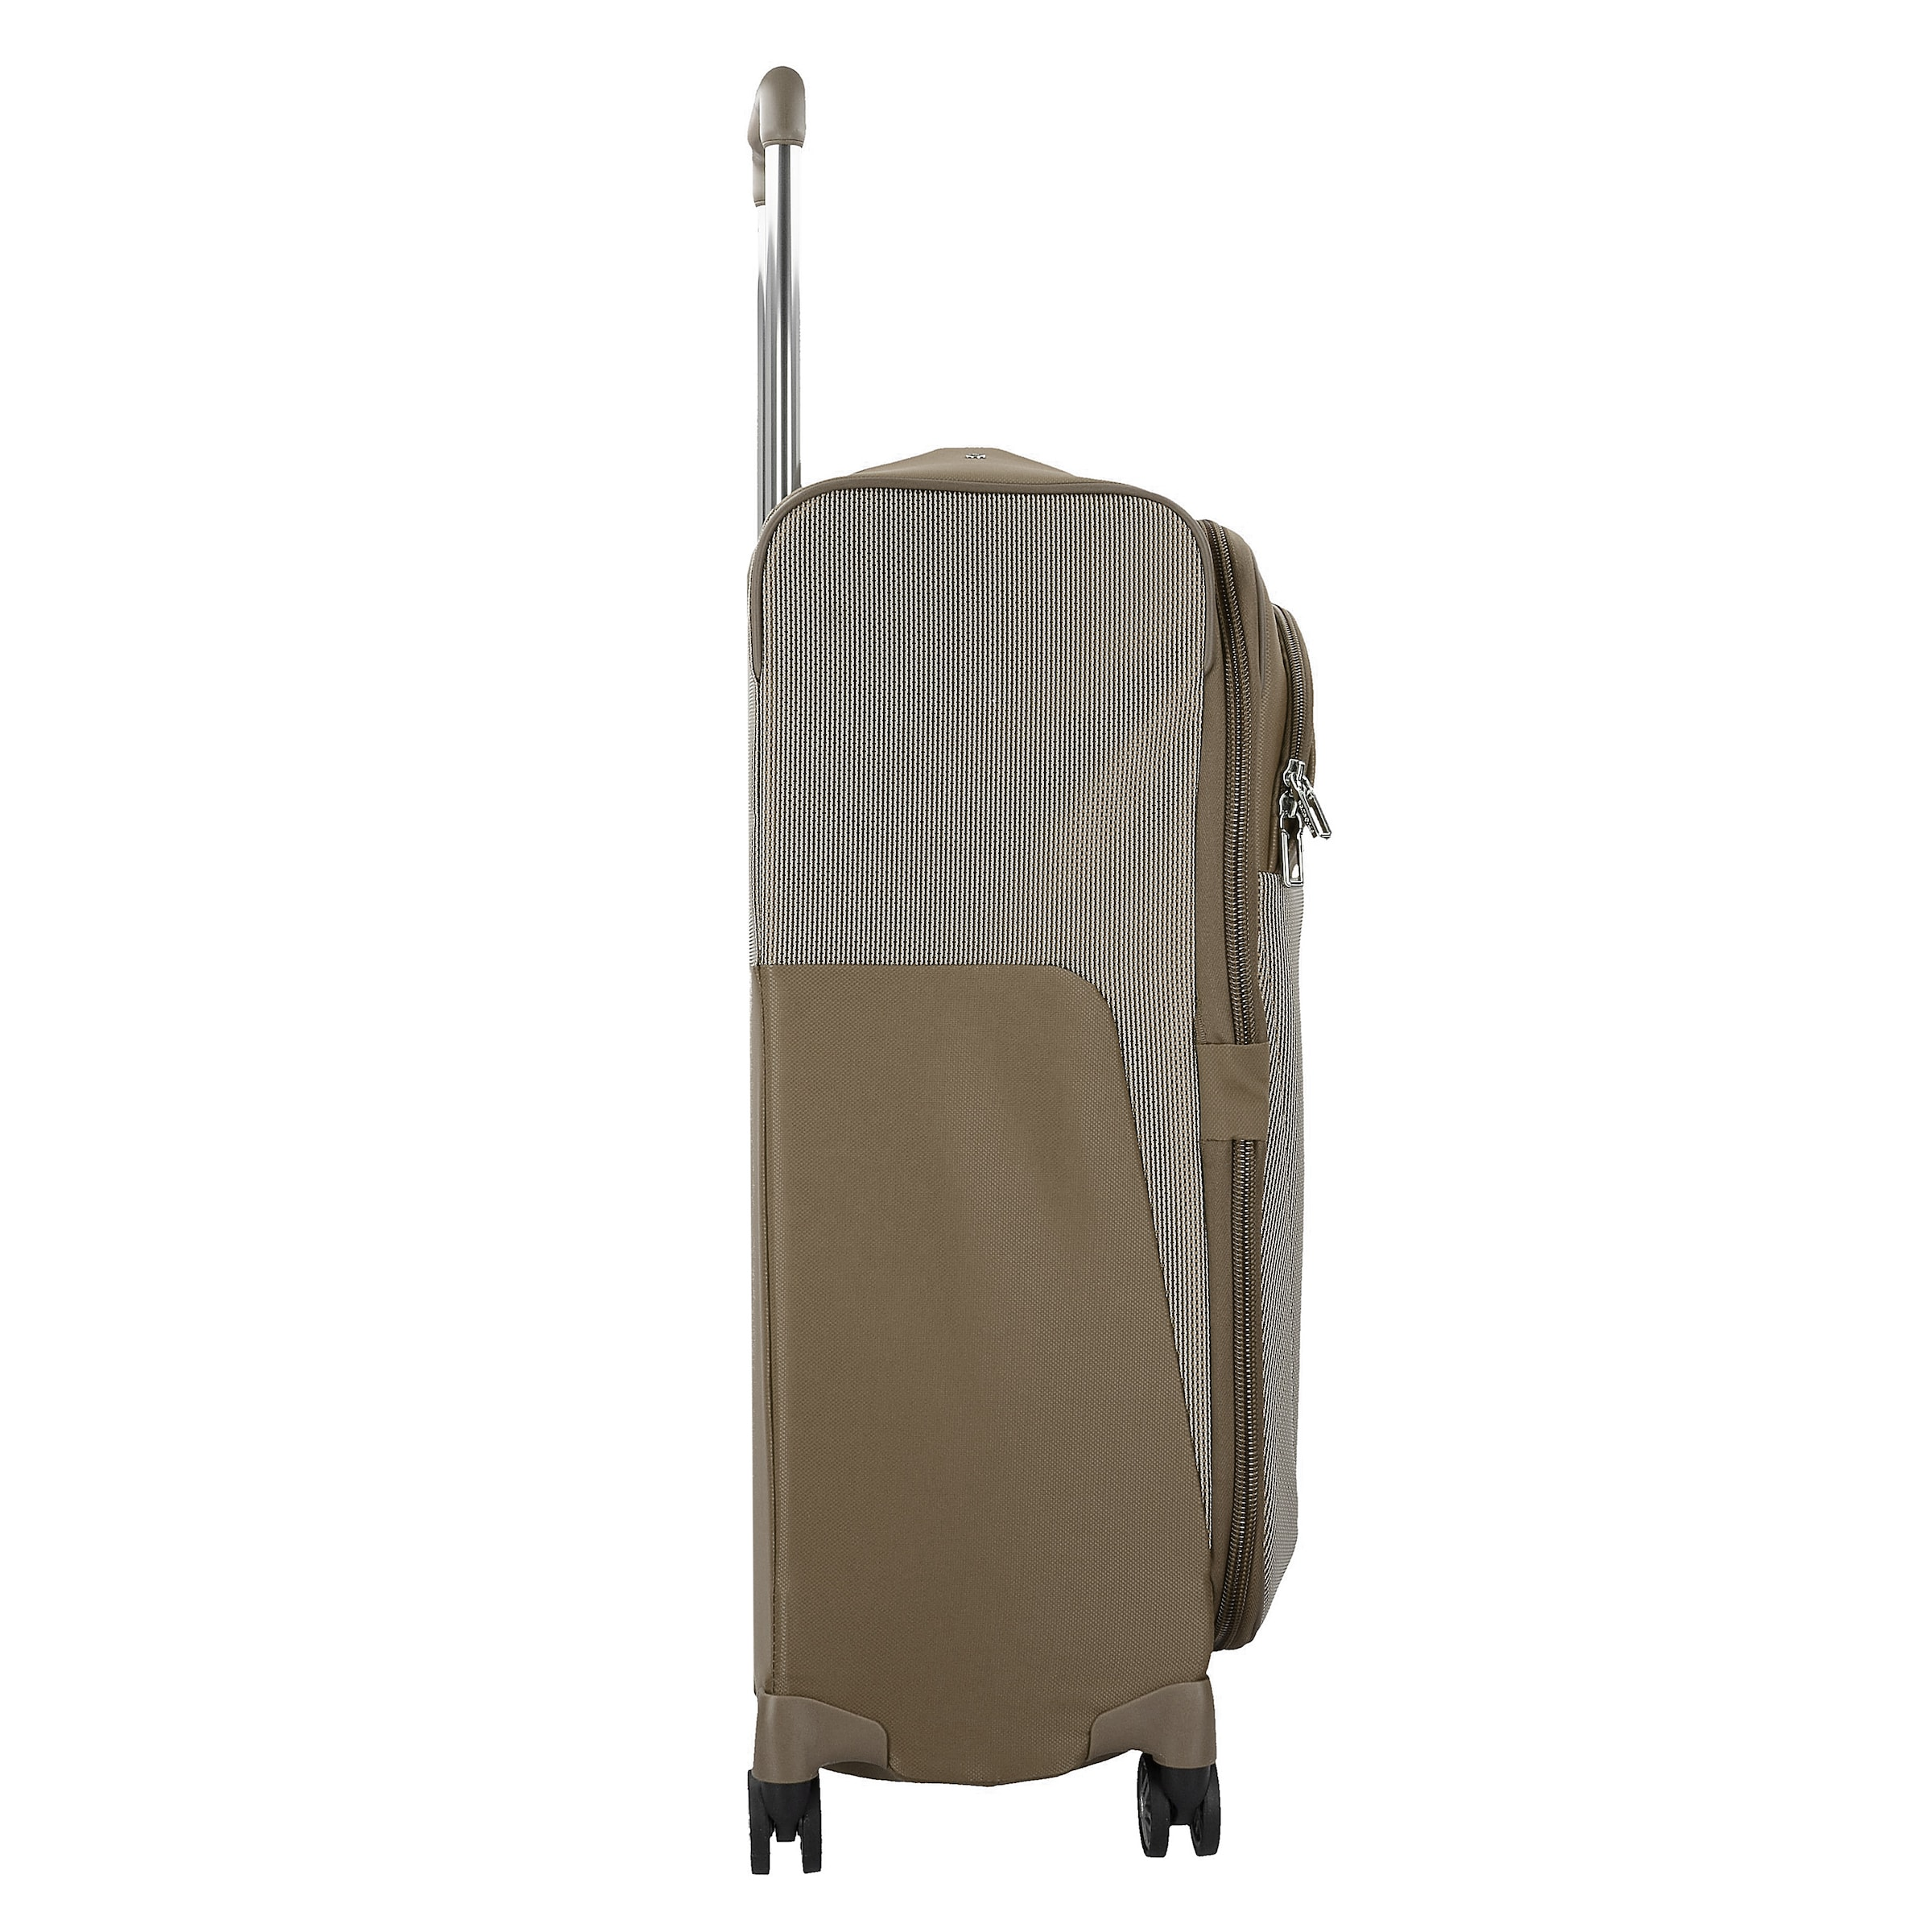 In Braun Braun Samsonite Samsonite In Trolley Trolley Samsonite N8mw0nOv